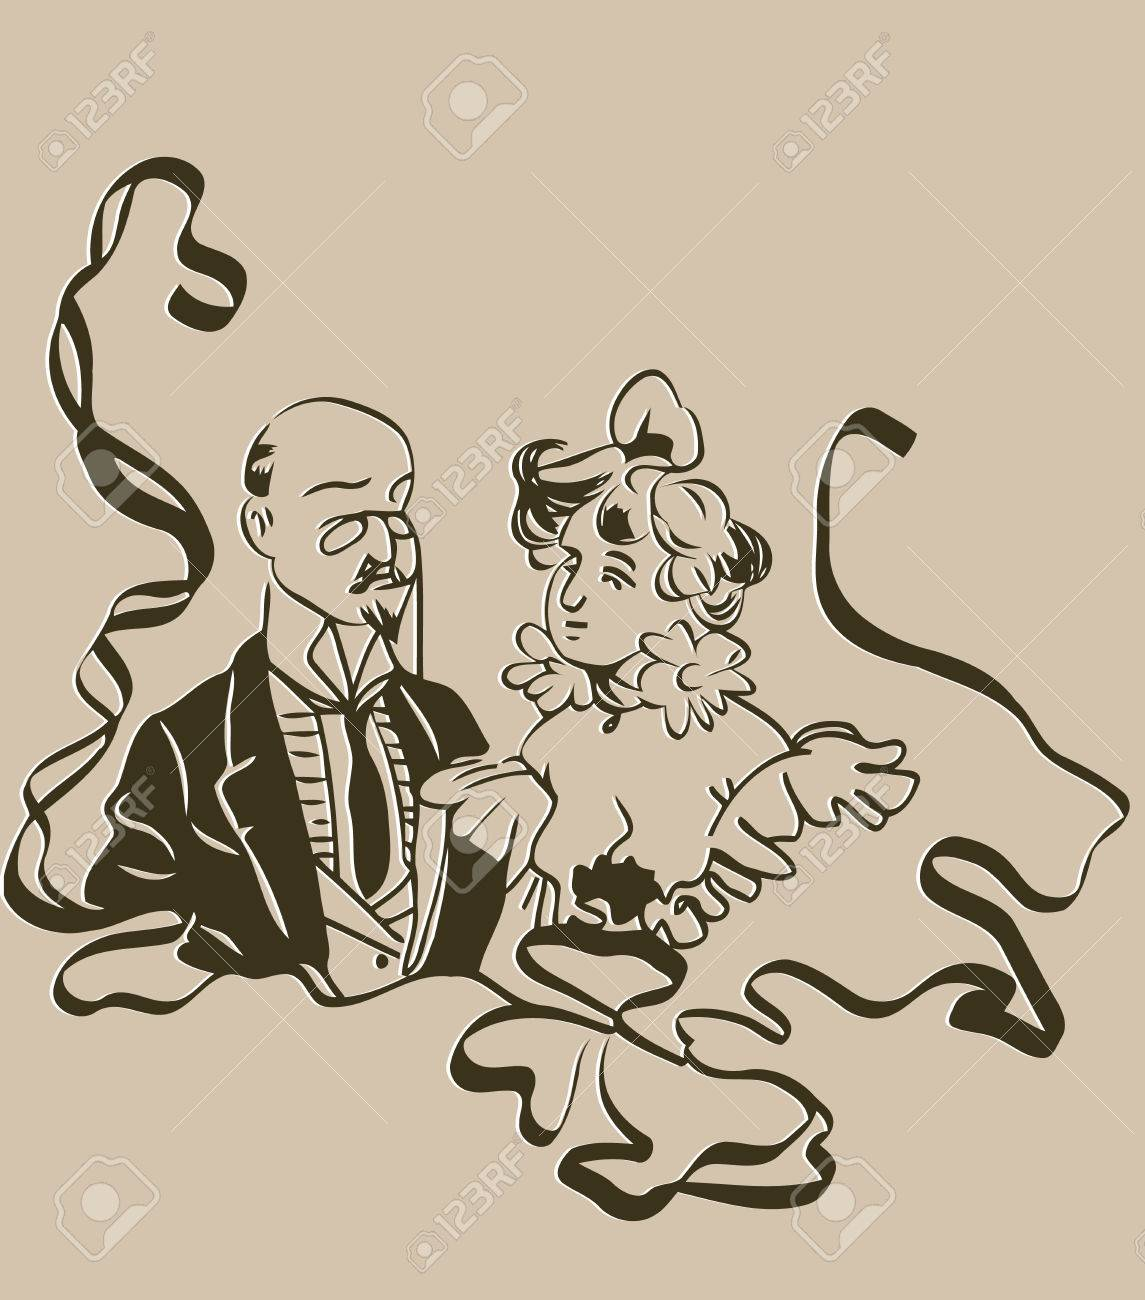 1145x1300 Sketch Of A Bald Man With A Monocle With Him A Woman In A Retro